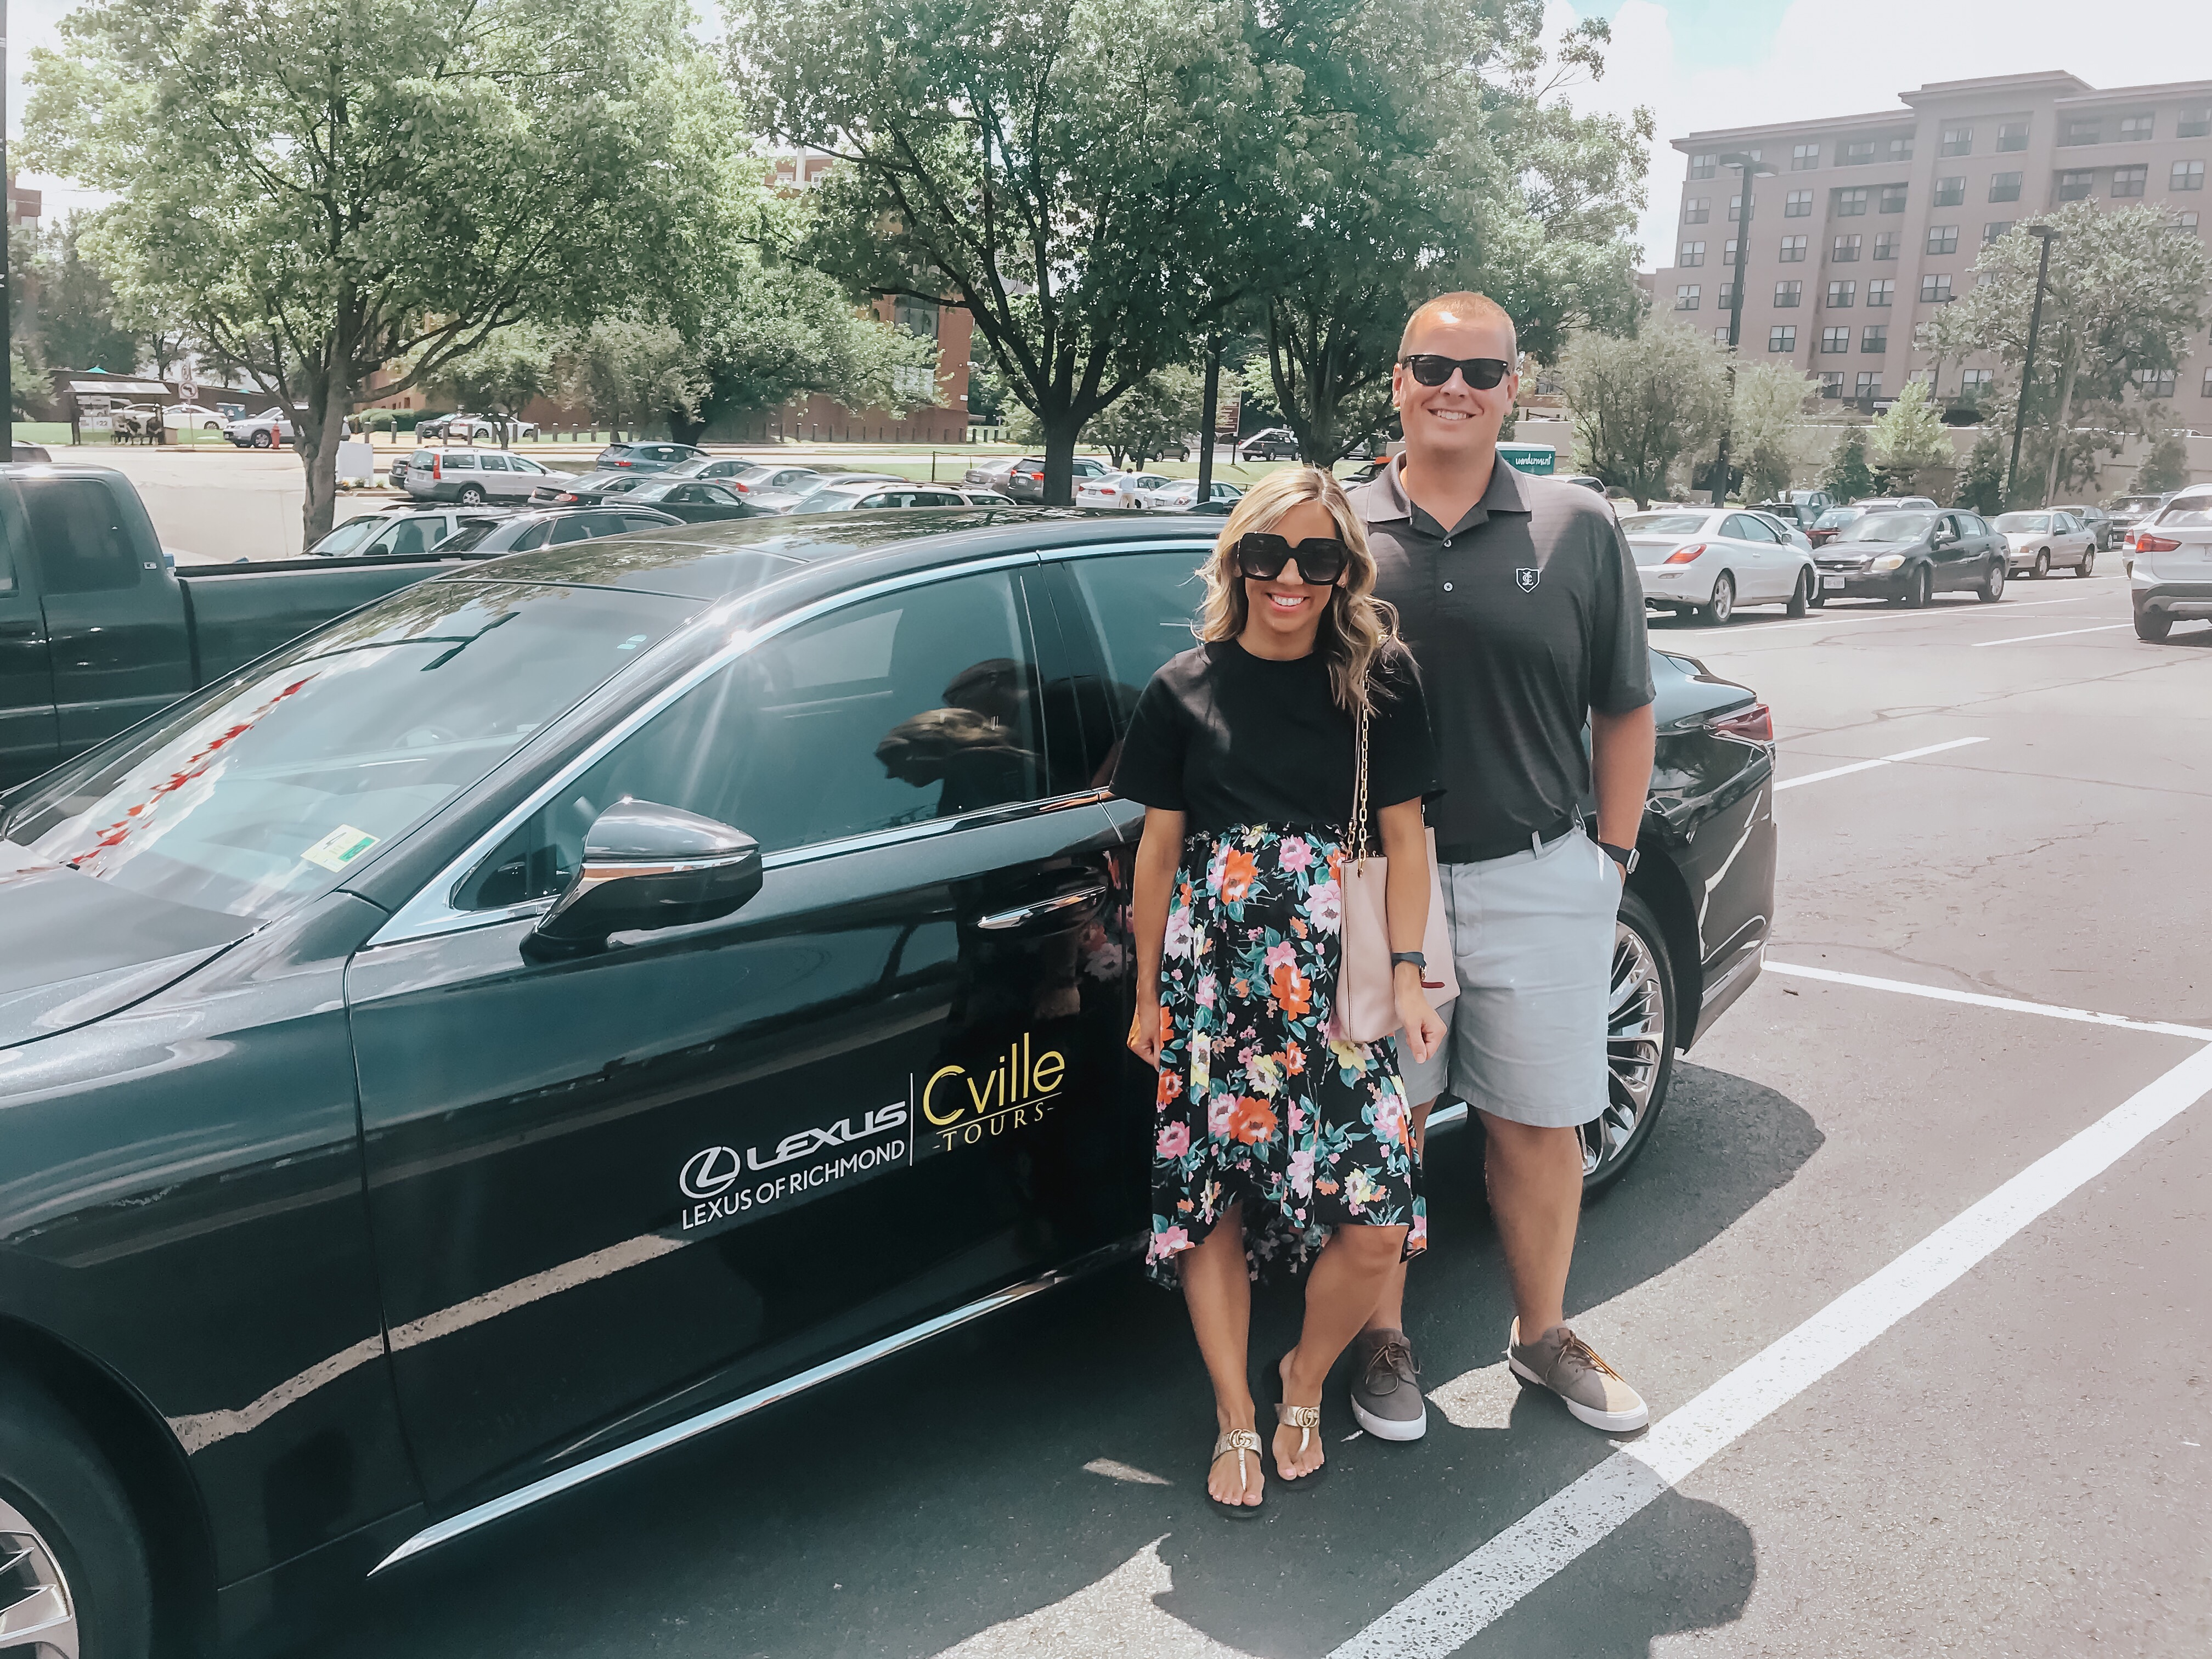 a taste of luxury with cville tours & lexus of richmond - according